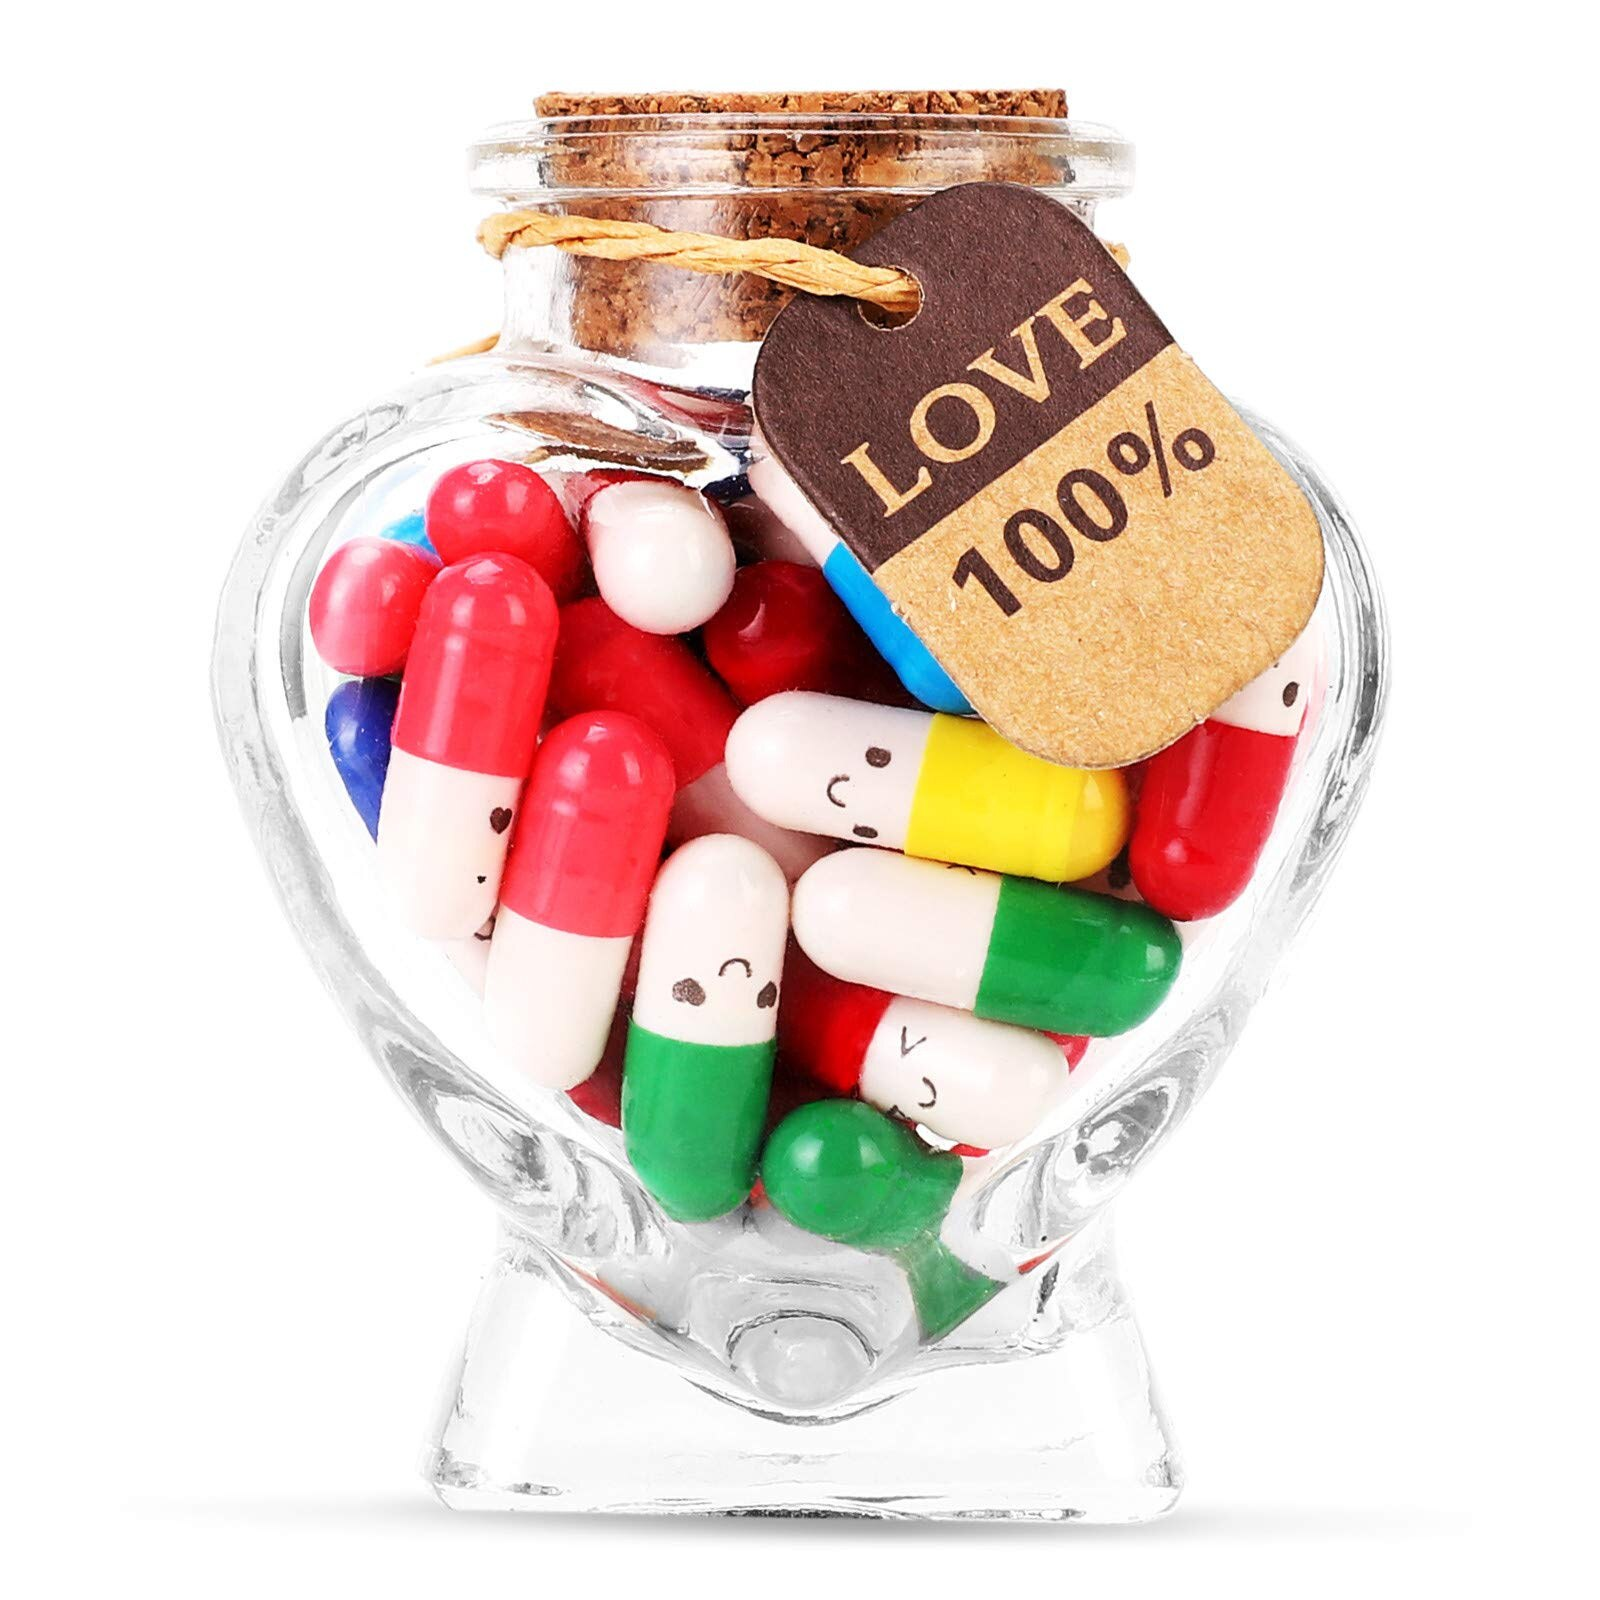 50 Pcs Mini Love Pill With Roll Paper Blank Notes Message In A Bottle Capsule Letter Full Clear Wish Bottle For Party Gift Xmas sparks n message in a bottle послание в бутылке